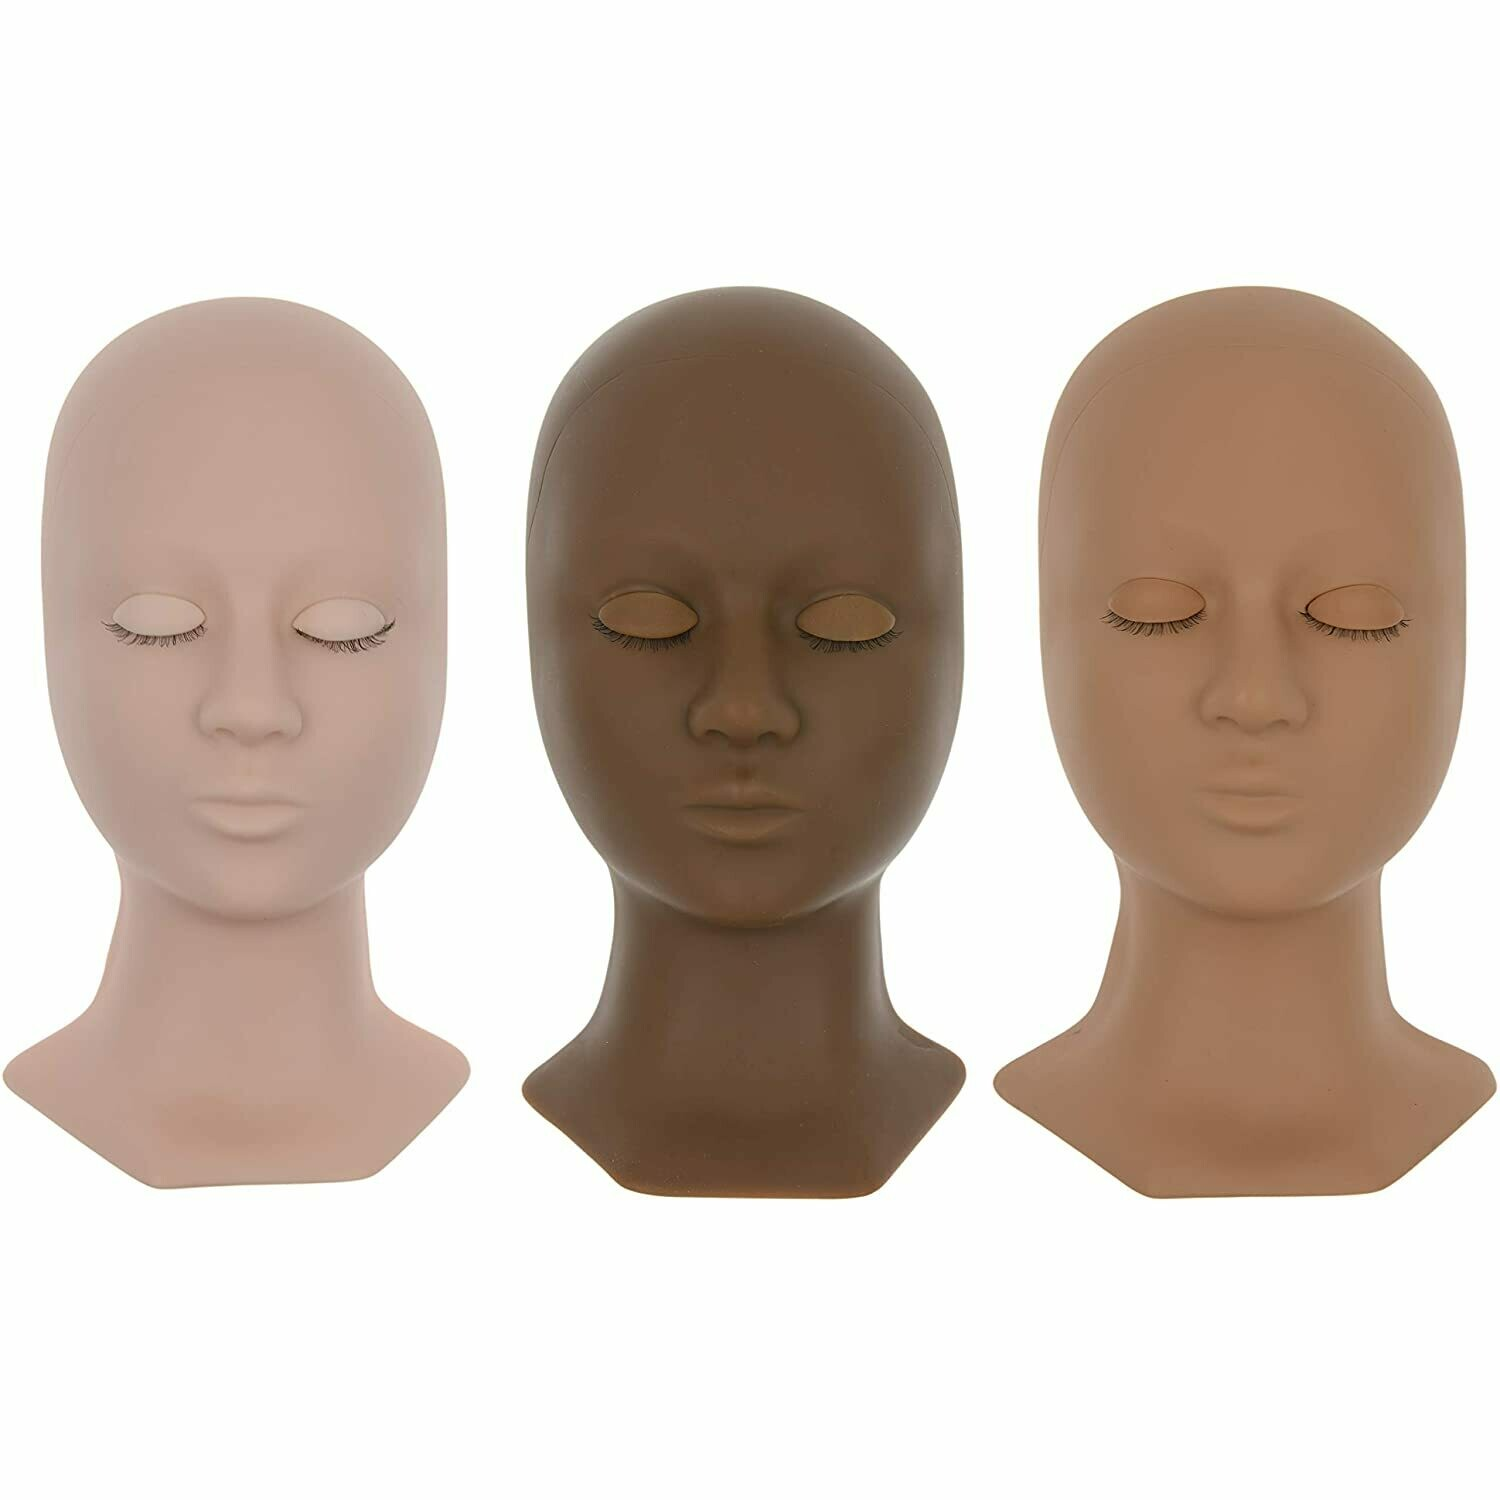 [BNP] Premium Mannequin Head for Eyelash Extensions with 3 Pairs of Removable Eyelids